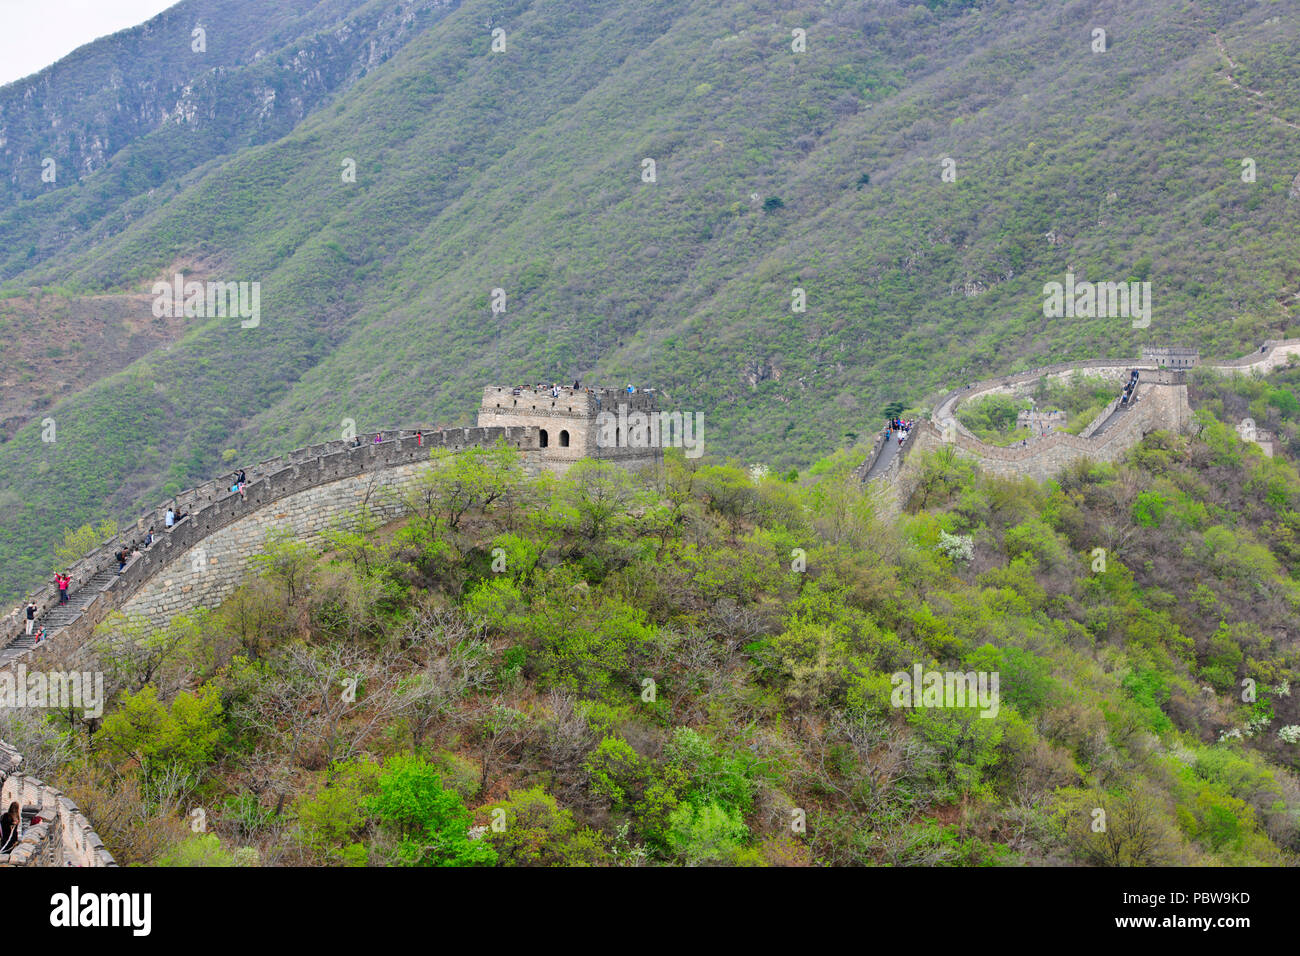 Great Wall of China,Mutianyu Section,Less Visited,Near Beijing,PRC,People's republic of China,China Stock Photo